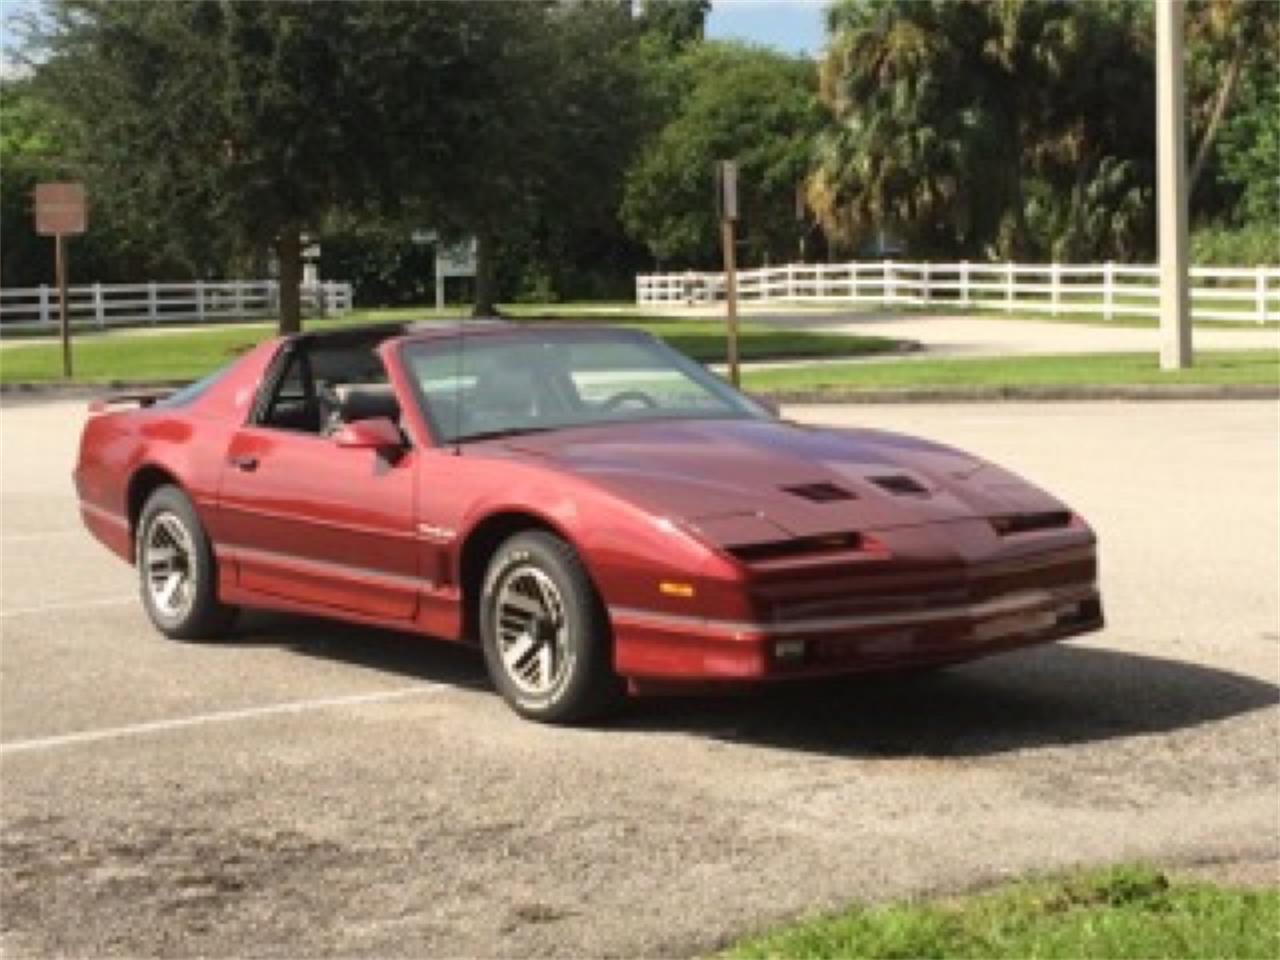 1986 pontiac firebird trans am for sale classiccars com cc 777738 1986 pontiac firebird trans am for sale